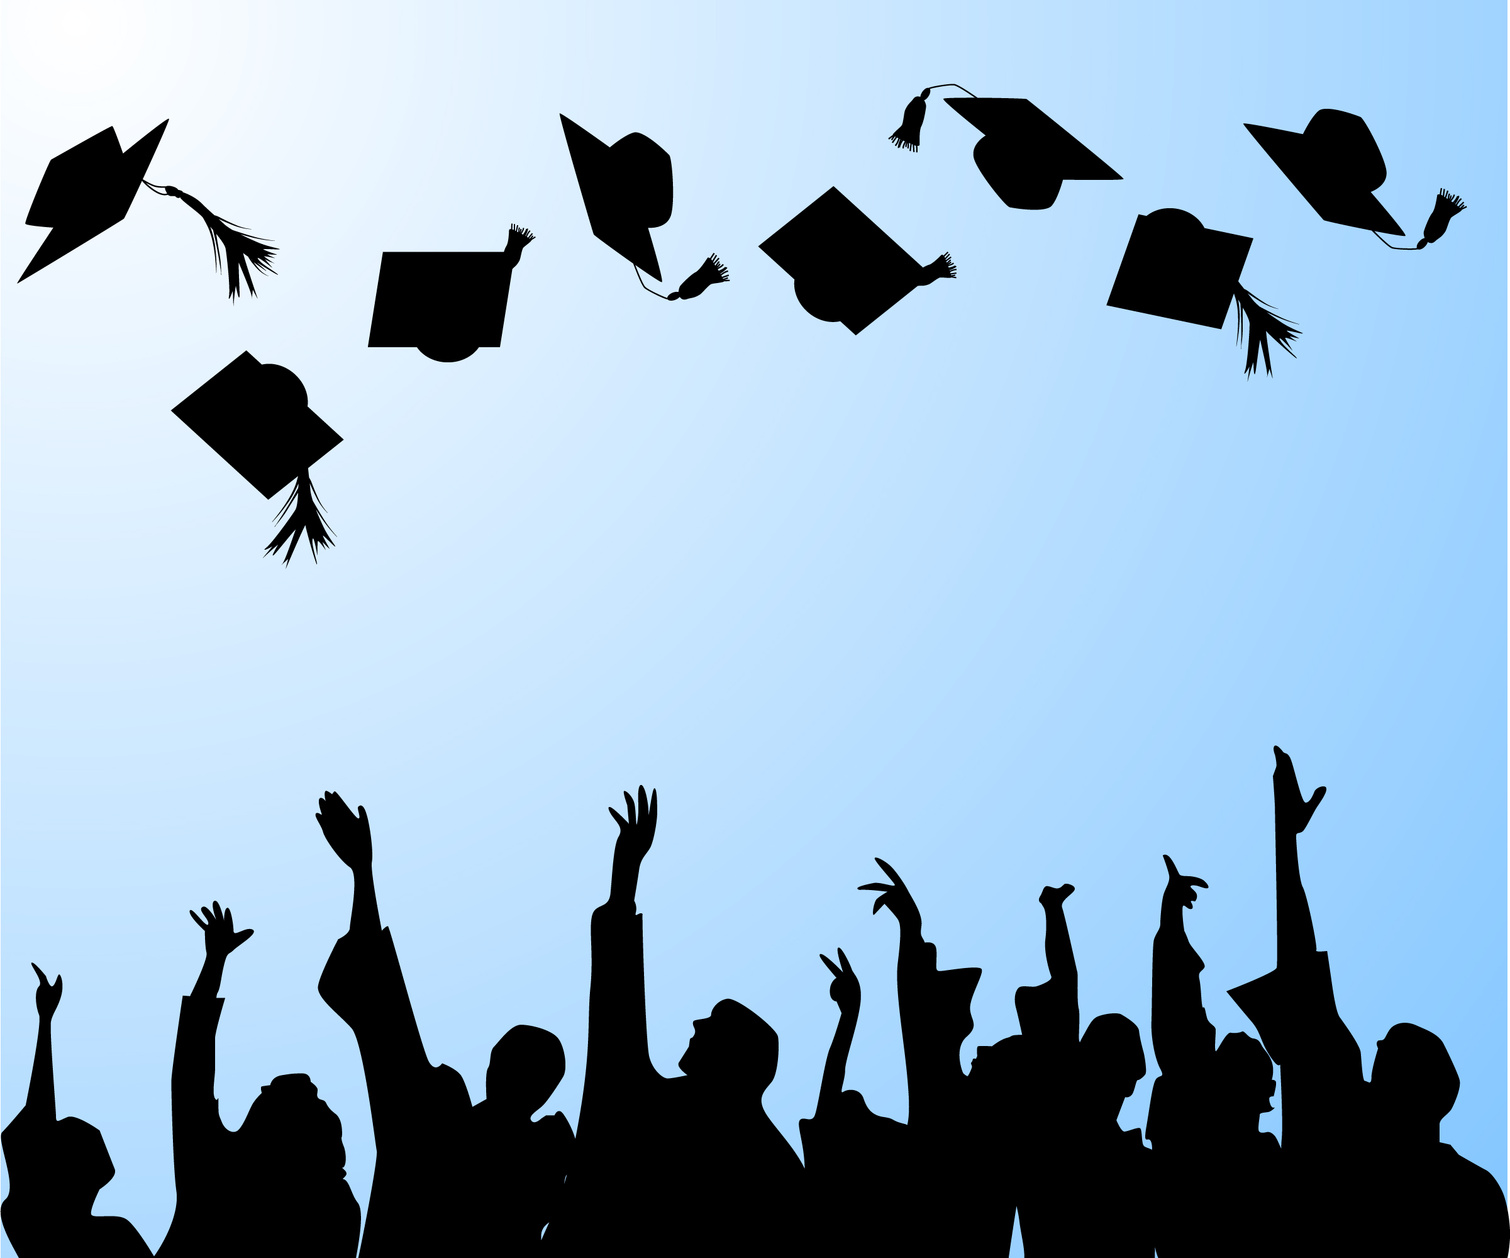 Free Download Graduation University Backgrounds For Powerpoint Education Ppt 1510x1258 For Your Desktop Mobile Tablet Explore 70 Free College Wallpapers Free Wallpaper Backgrounds Free Wallpaper Gallery College Wallpapers For Desktop